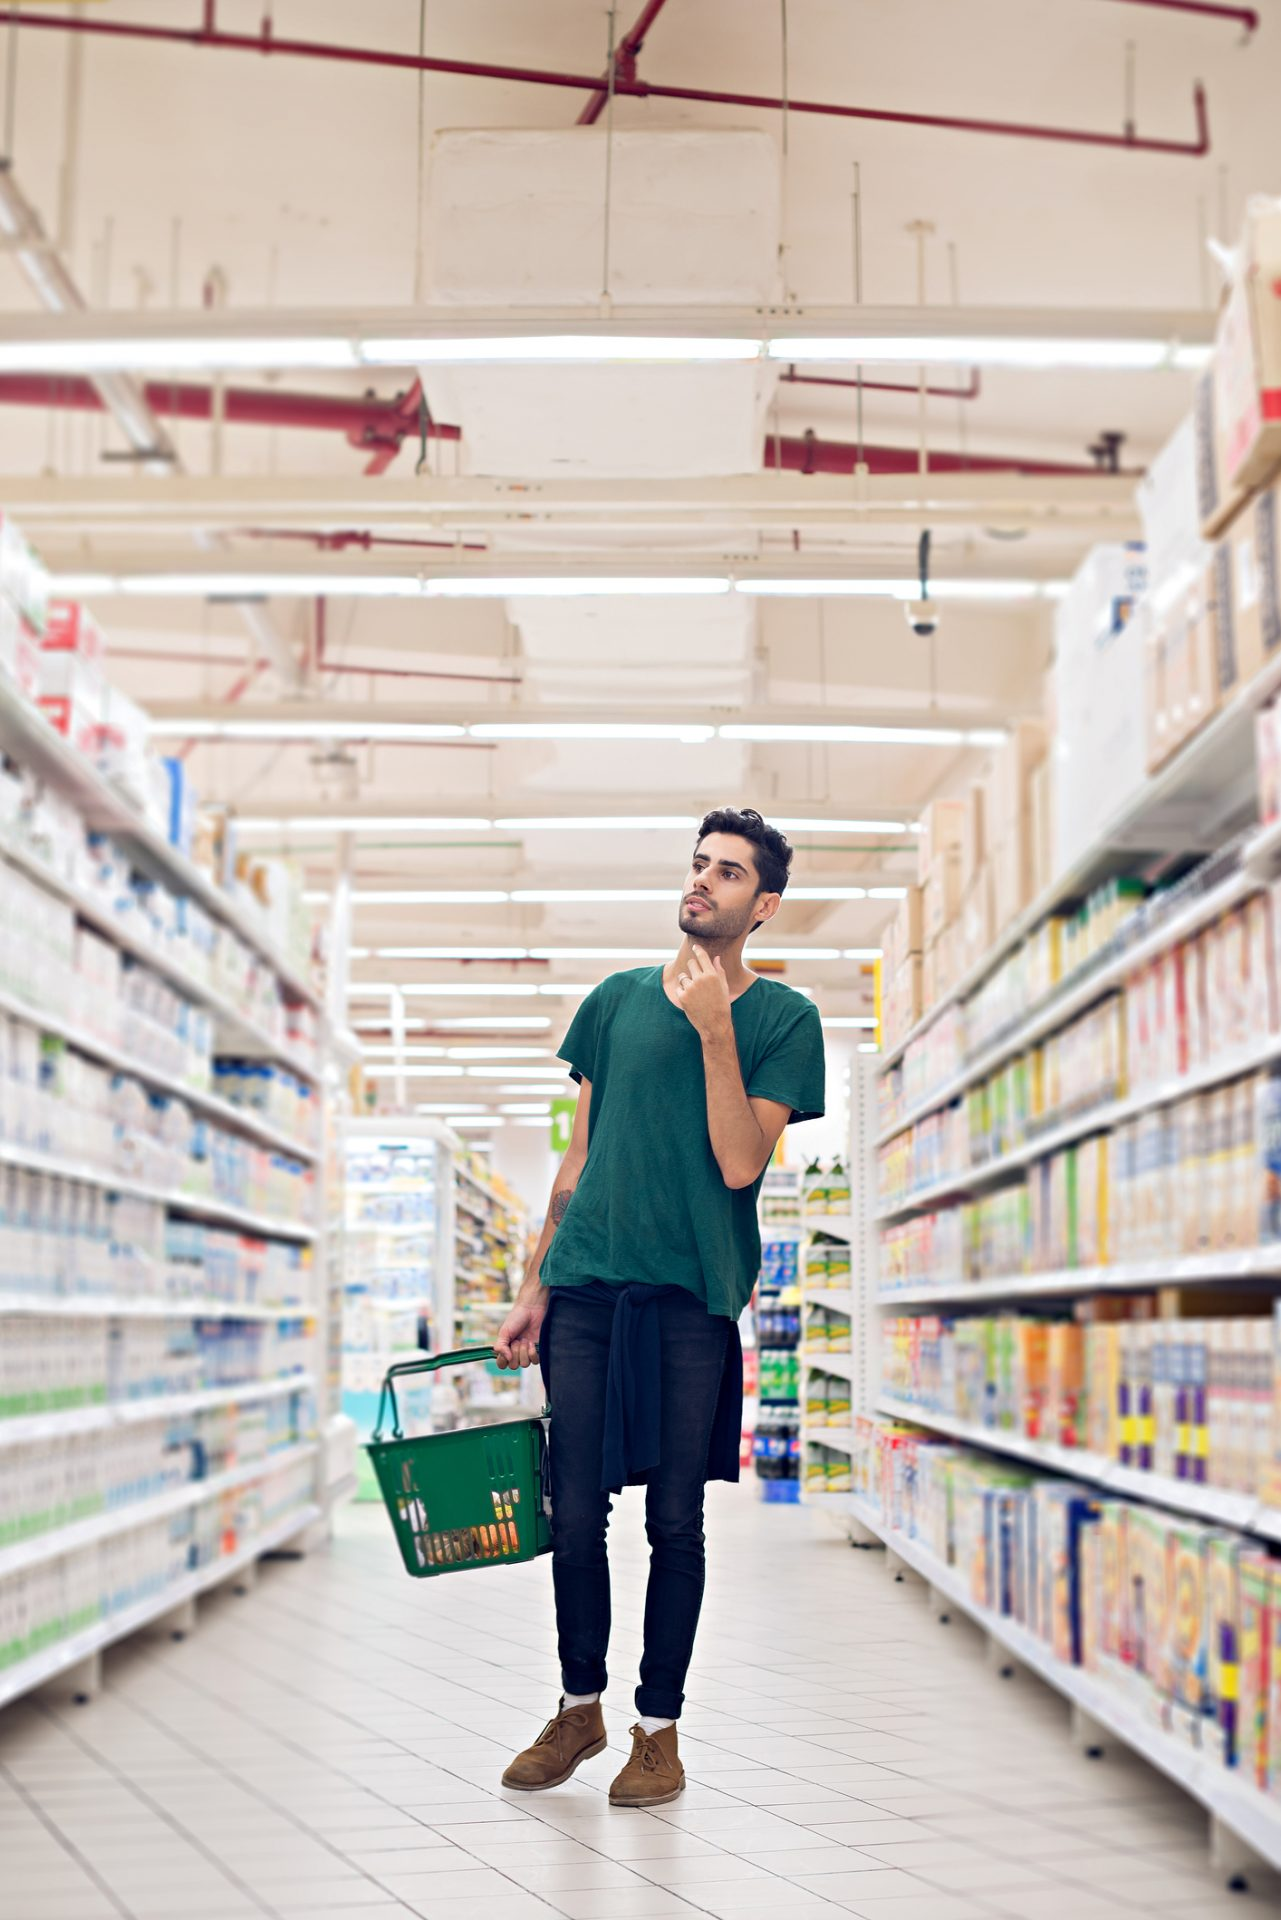 Young man grocery shopping